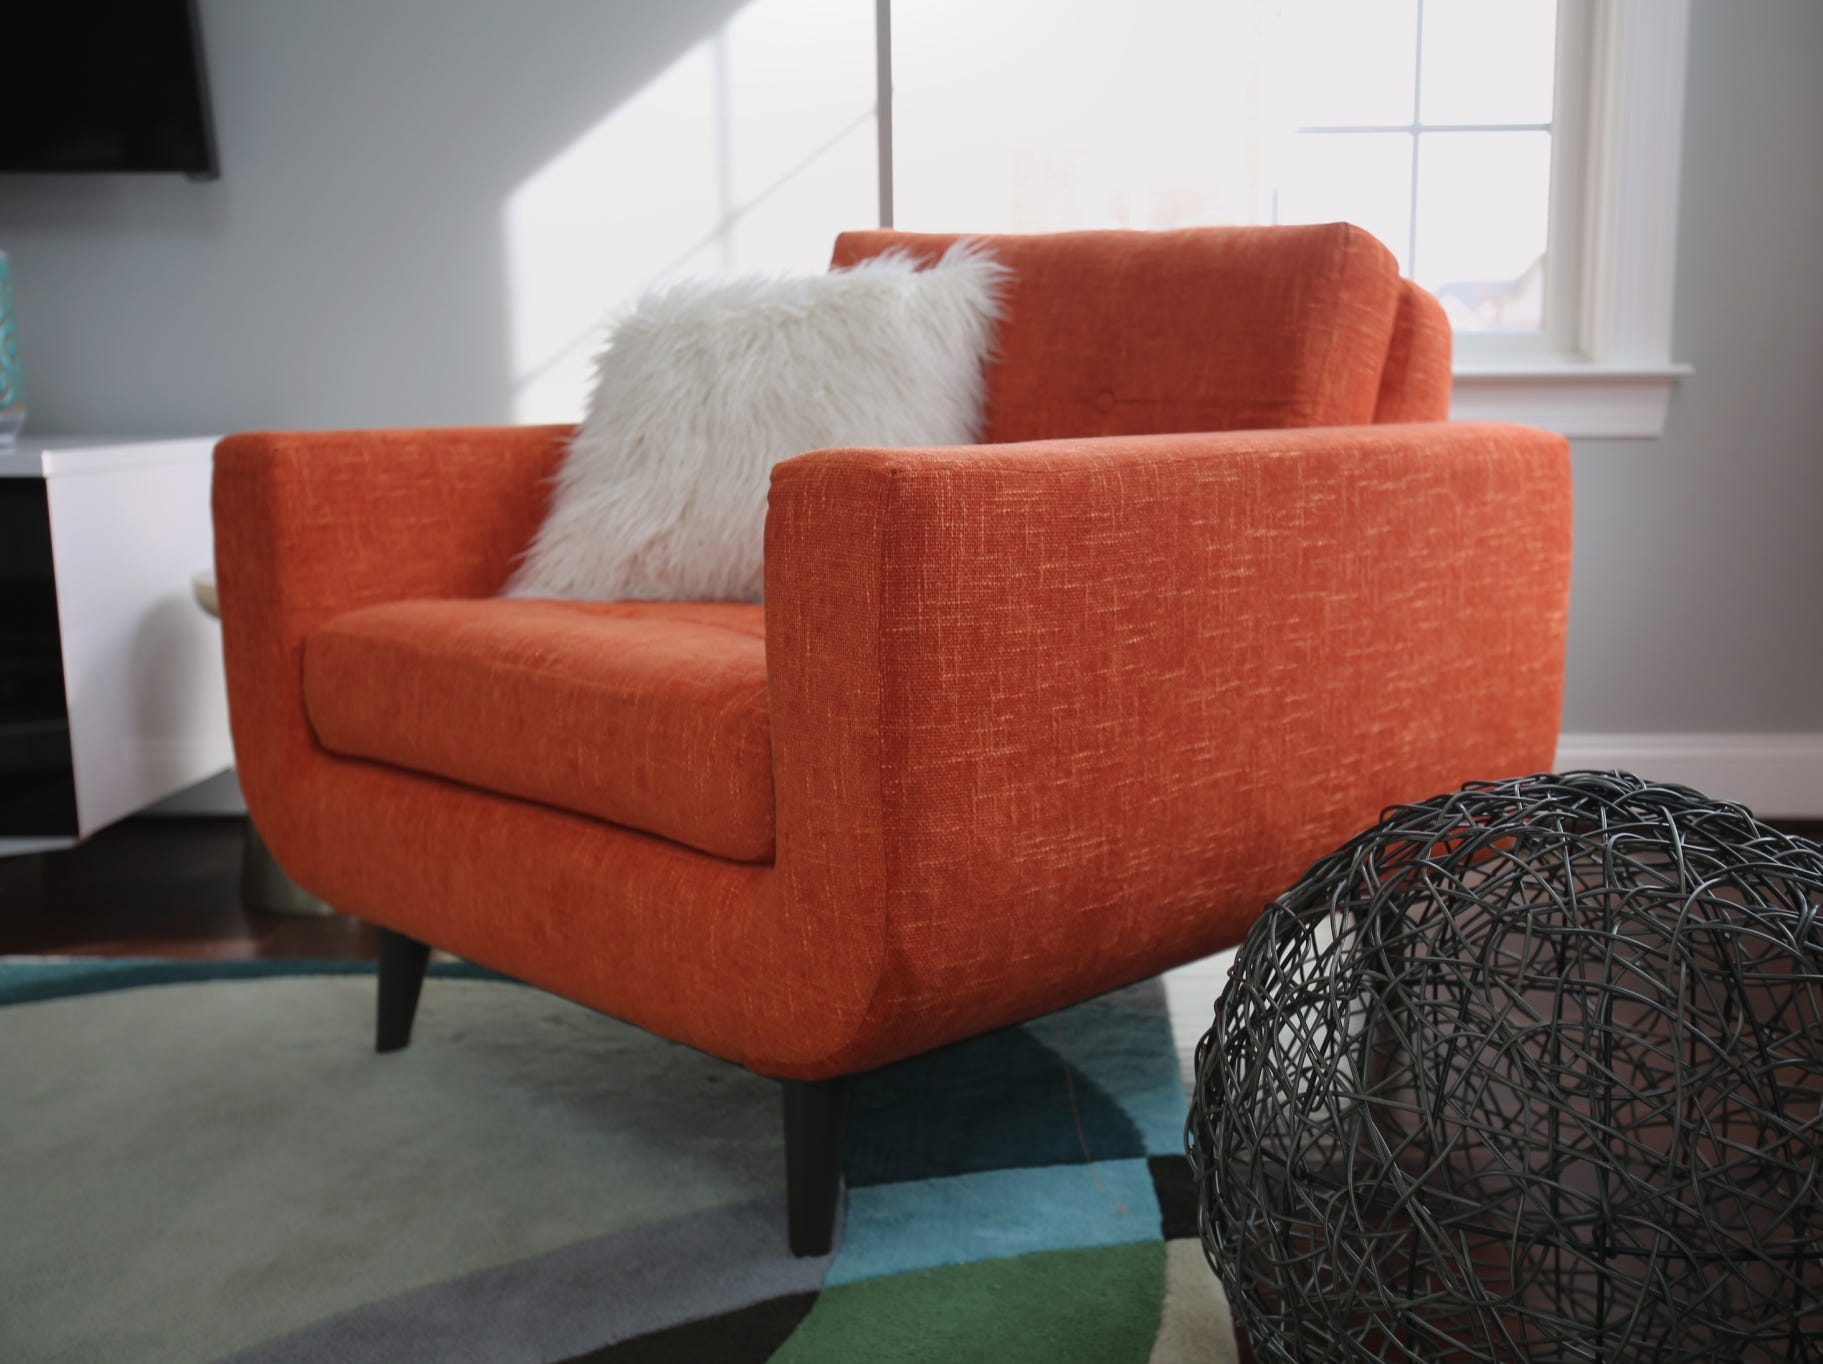 According to Dan Davis, large-scale accessories in the $50 range make a statement in any space, like the woven ball shown here (part of a pair) that accentuates the colorful midcentury-inspired chair.